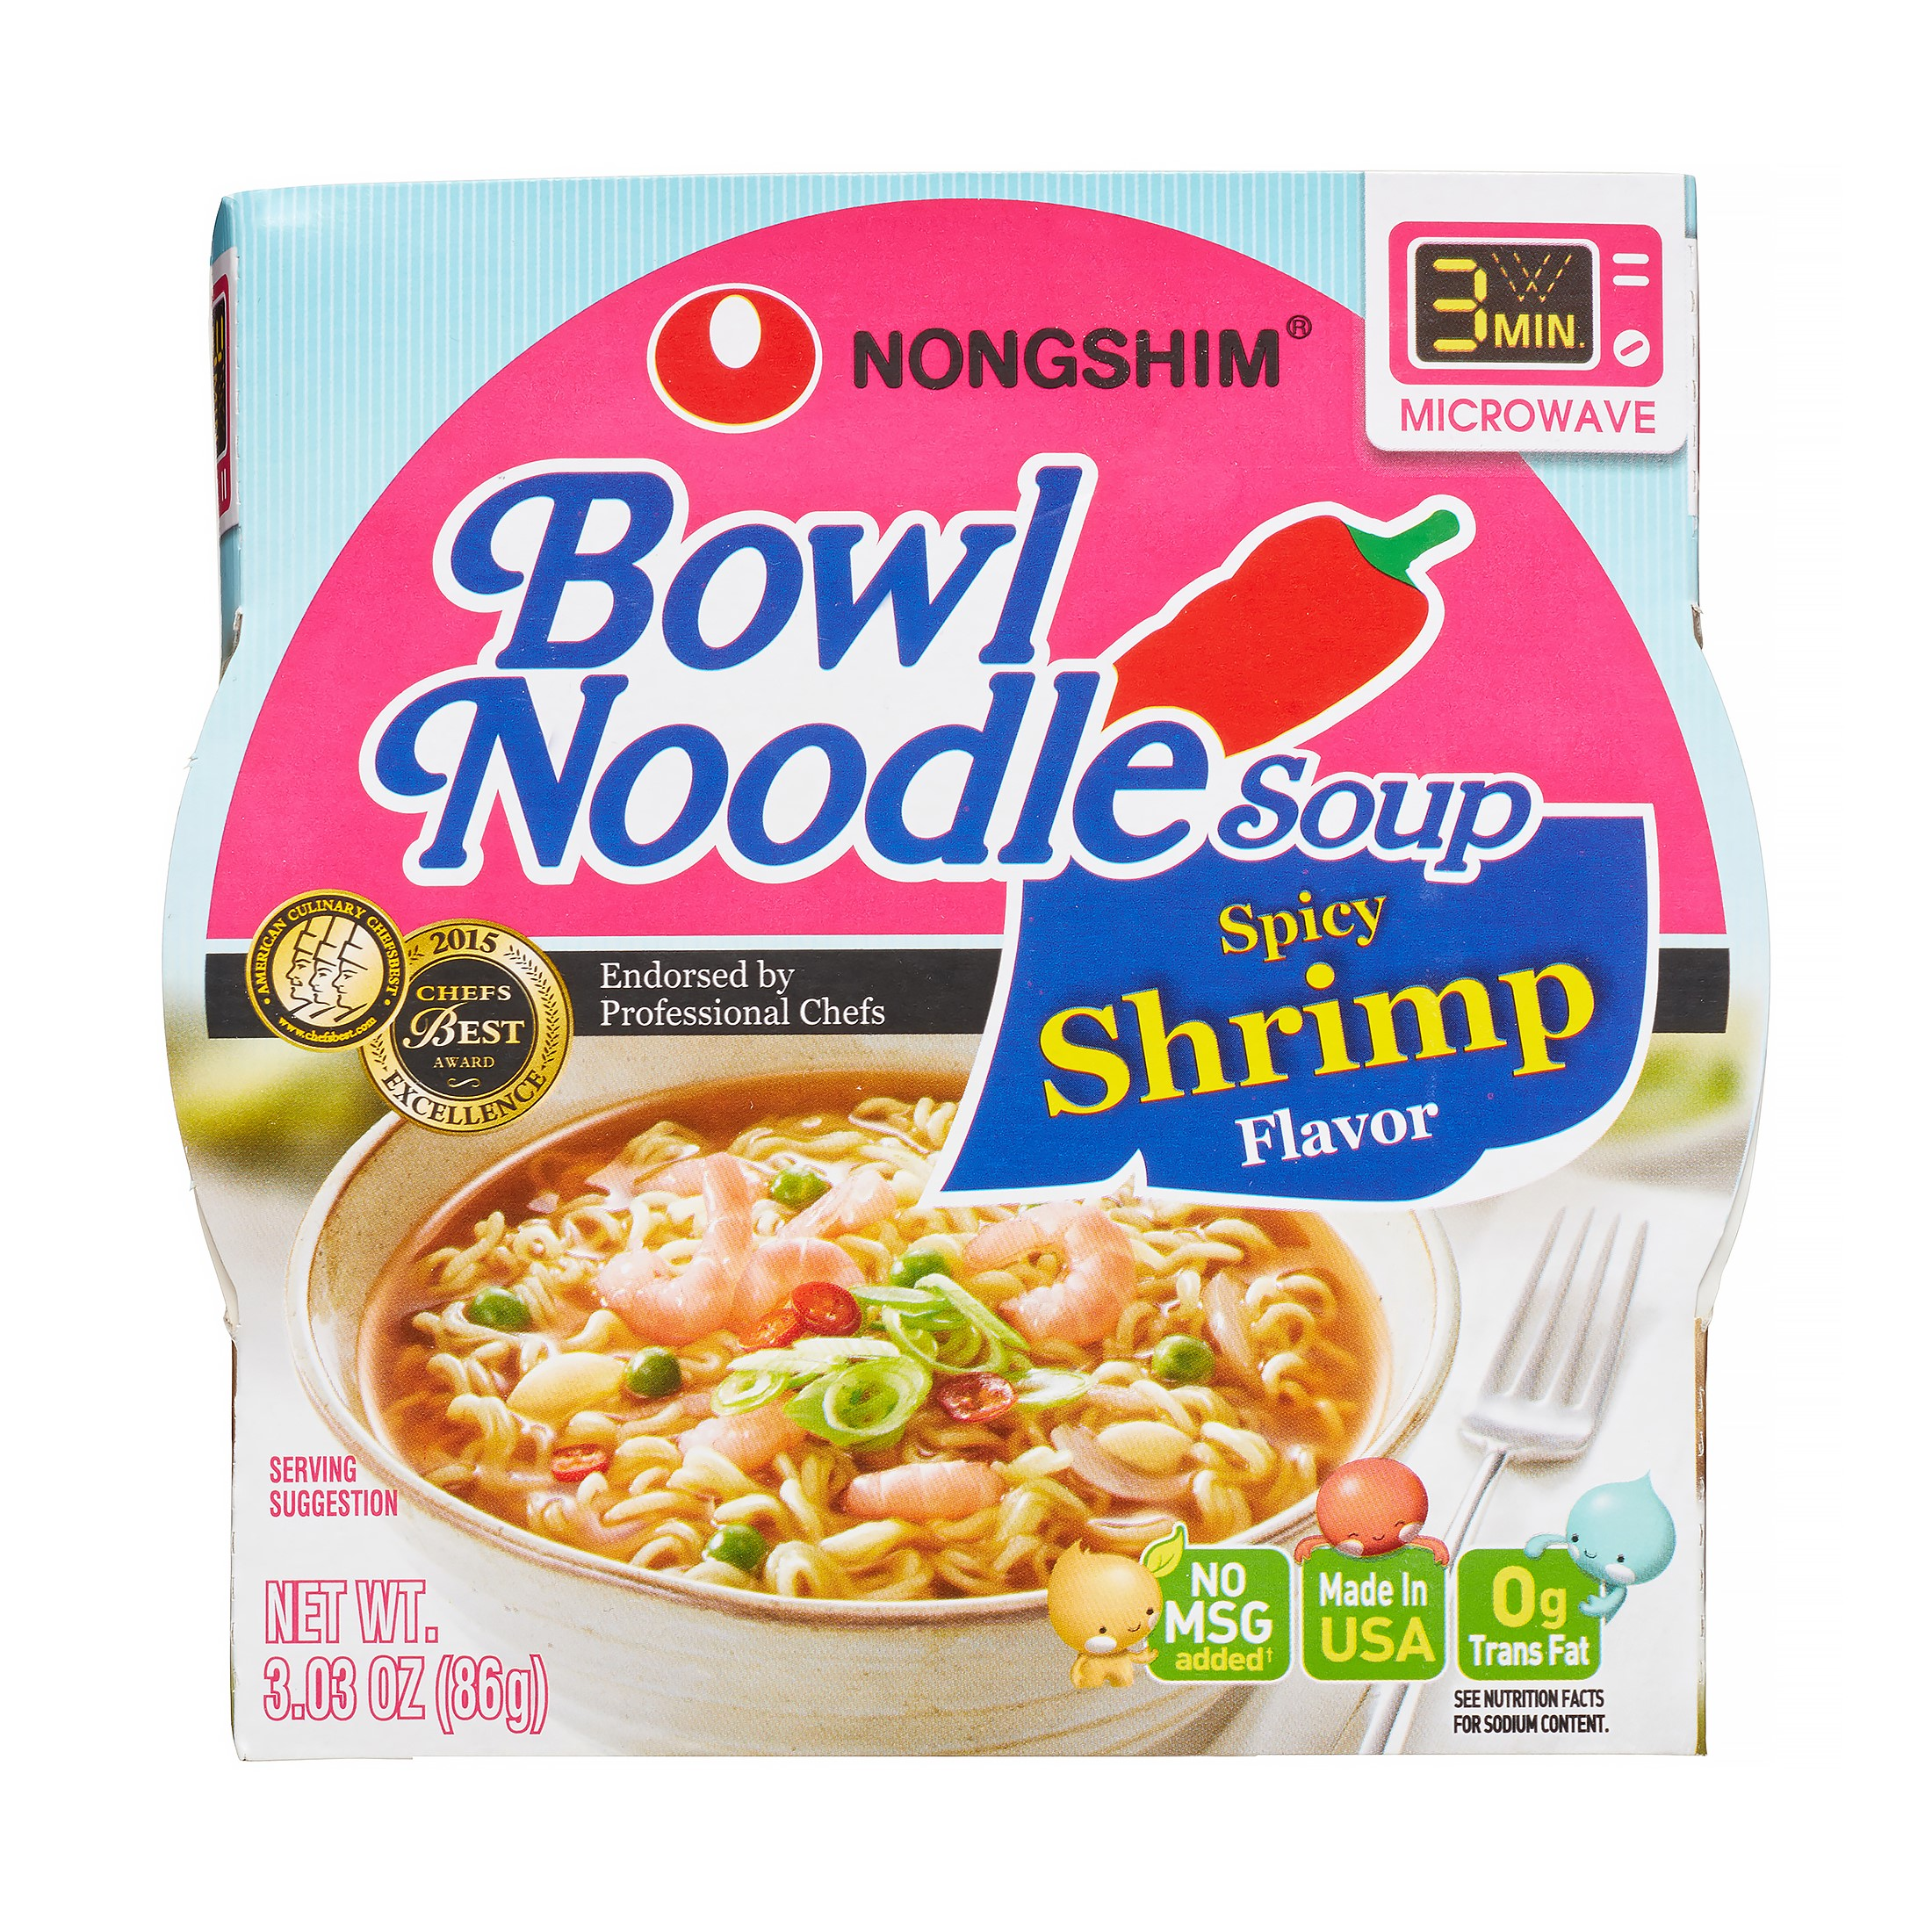 Nongshim Bowl Noodle Spicy Shrimp, 3.03 Oz, 12 Ct